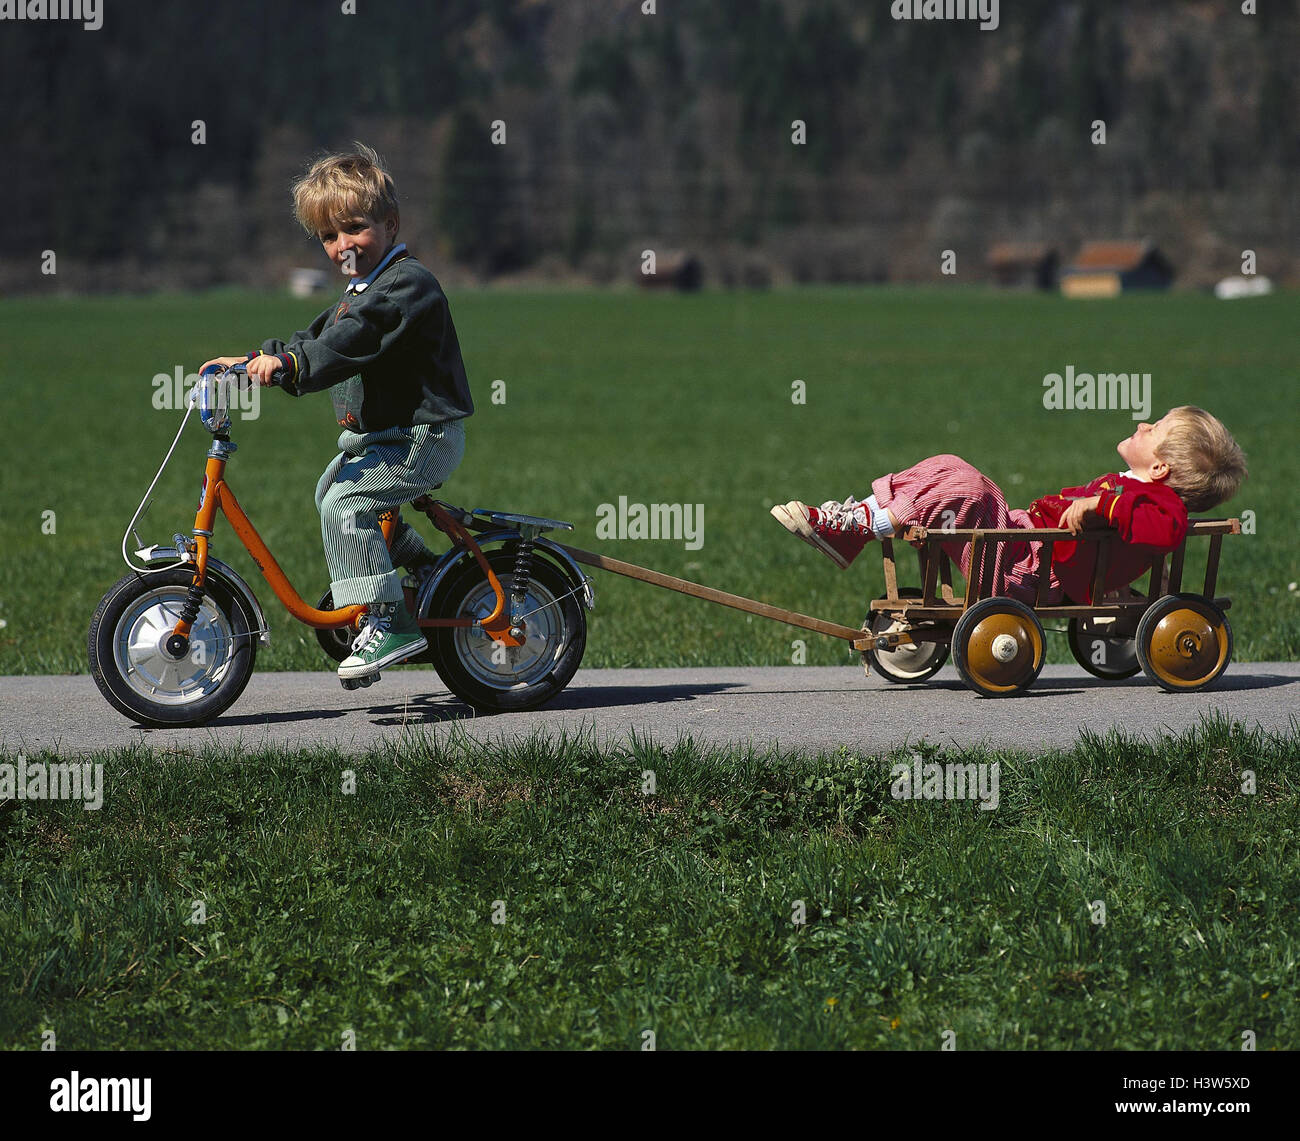 Country lane, boy, bicycle driving, brother, conductor carriage, drag, outside, excursion, game, play, children, - Stock Image